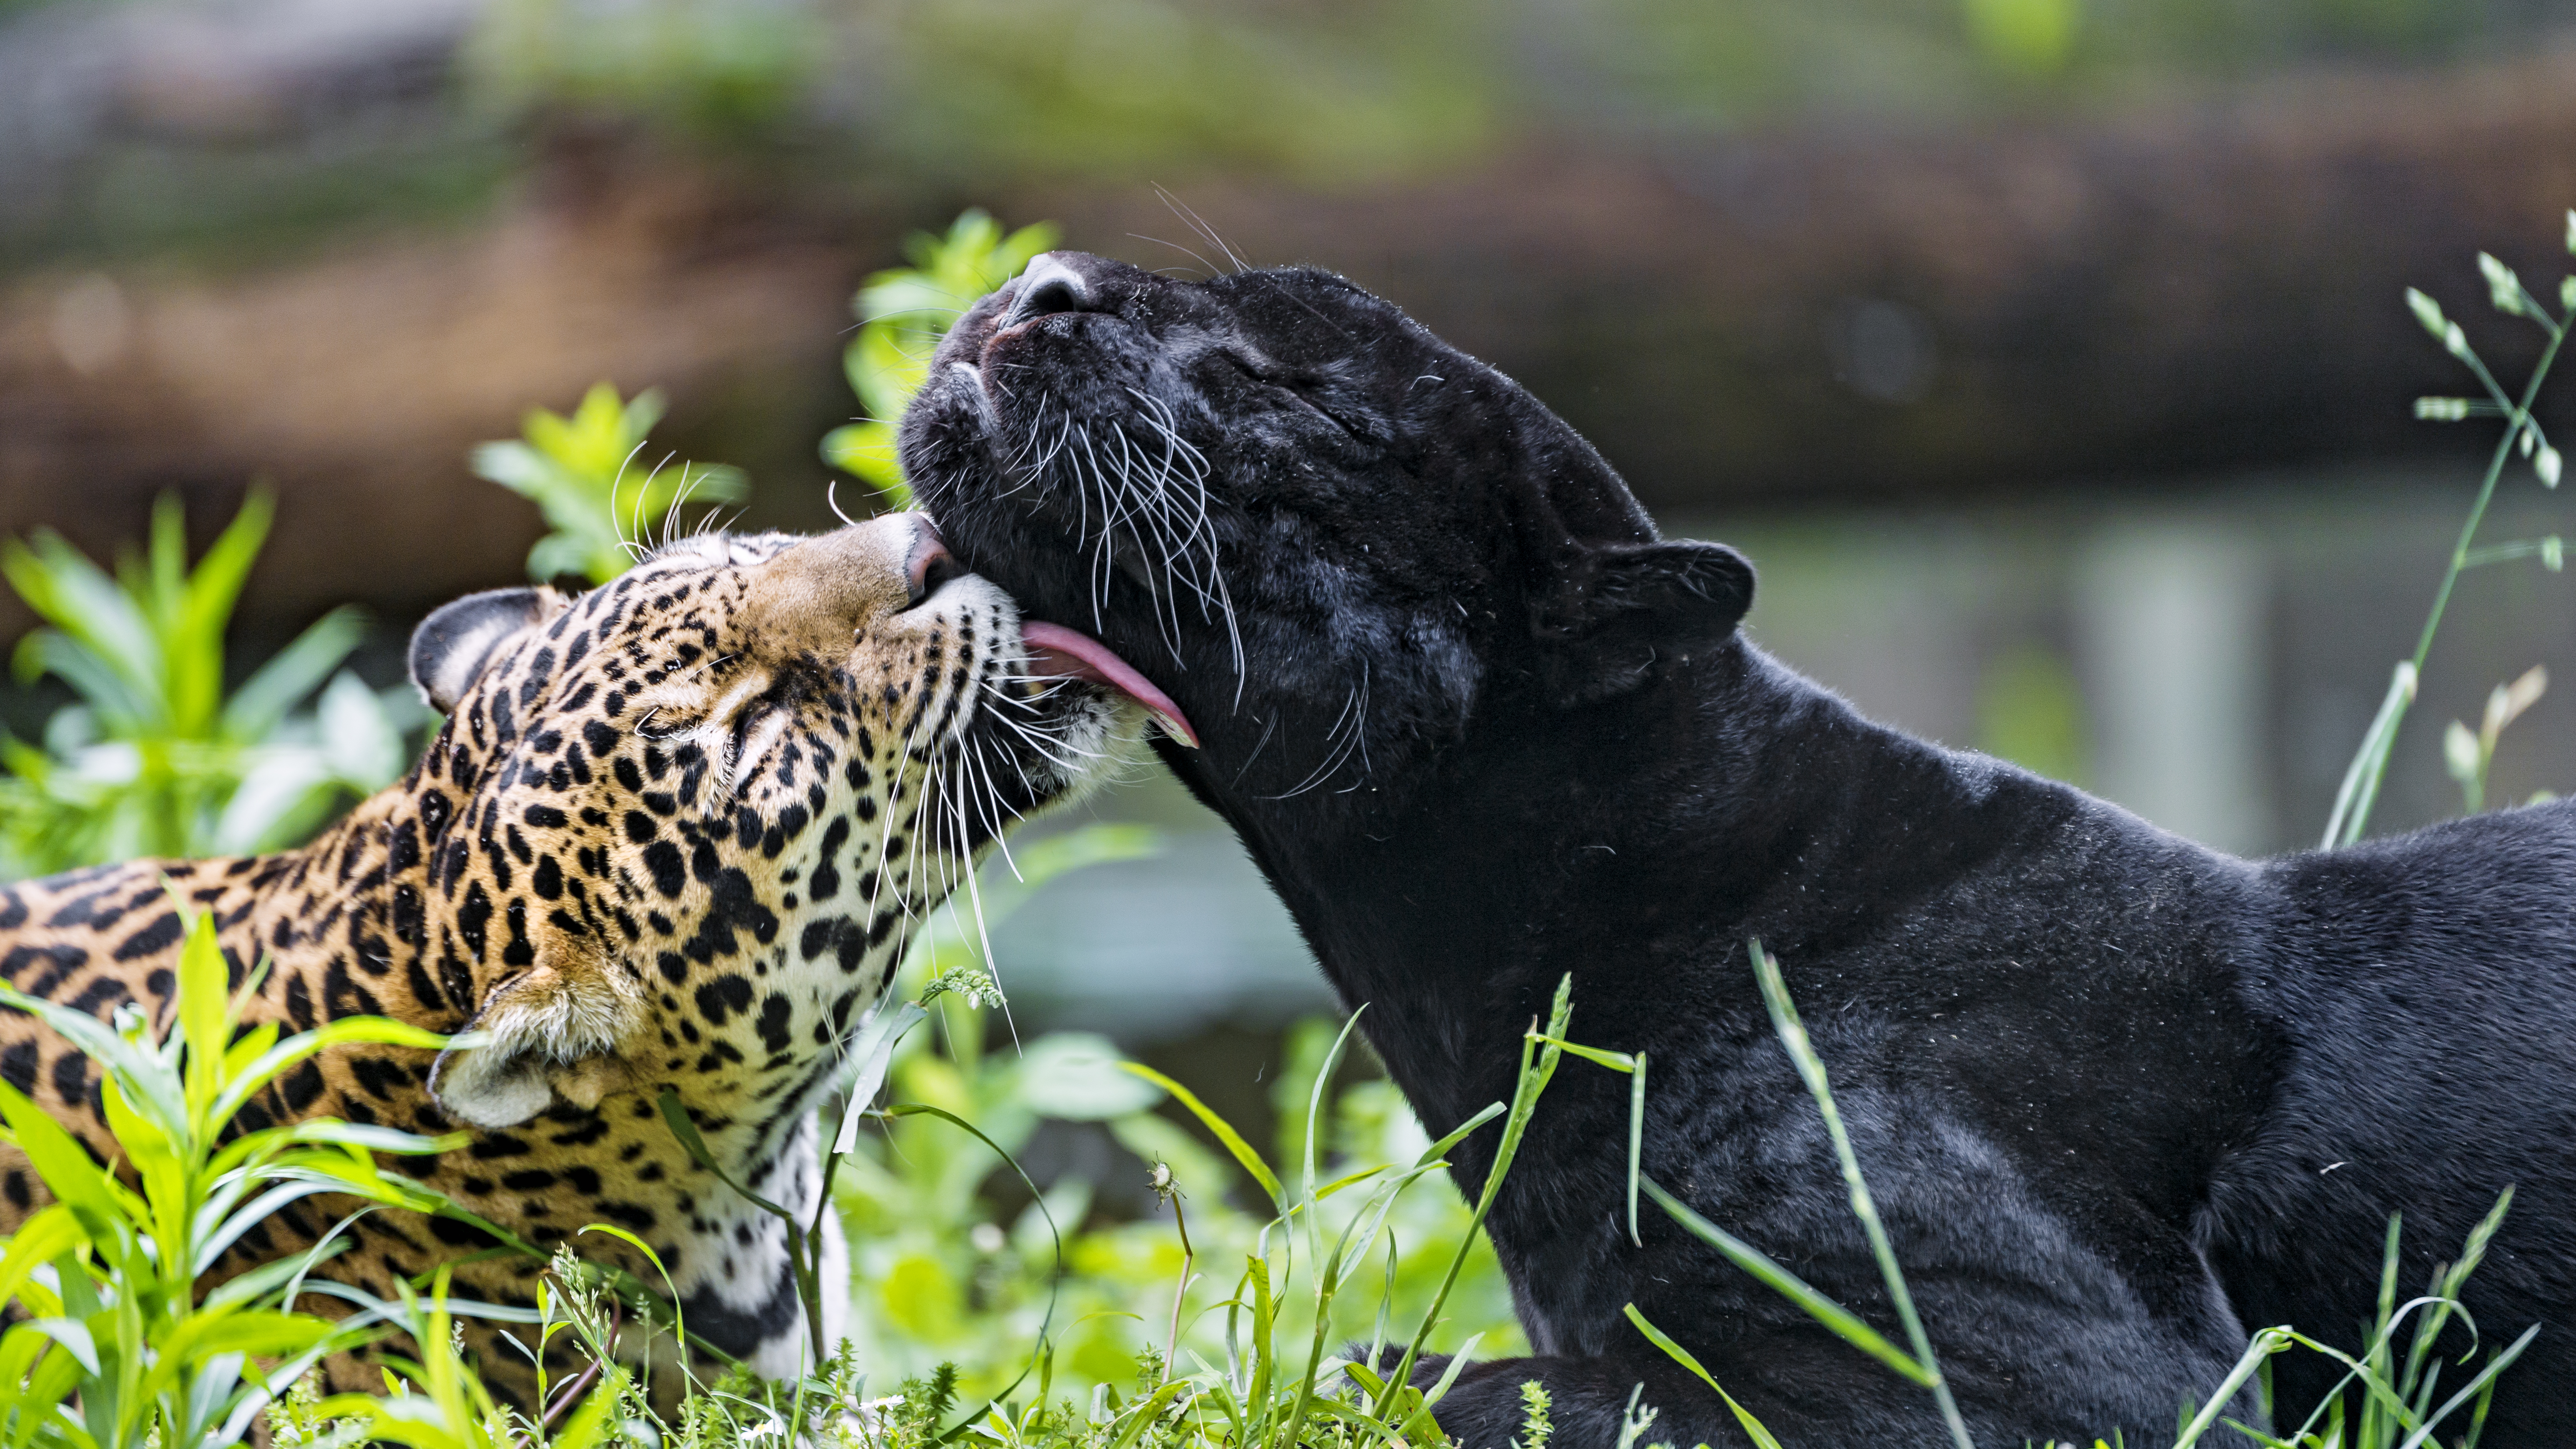 95499 download wallpaper Animals, Leopard, Wildlife, Lick, Panther screensavers and pictures for free